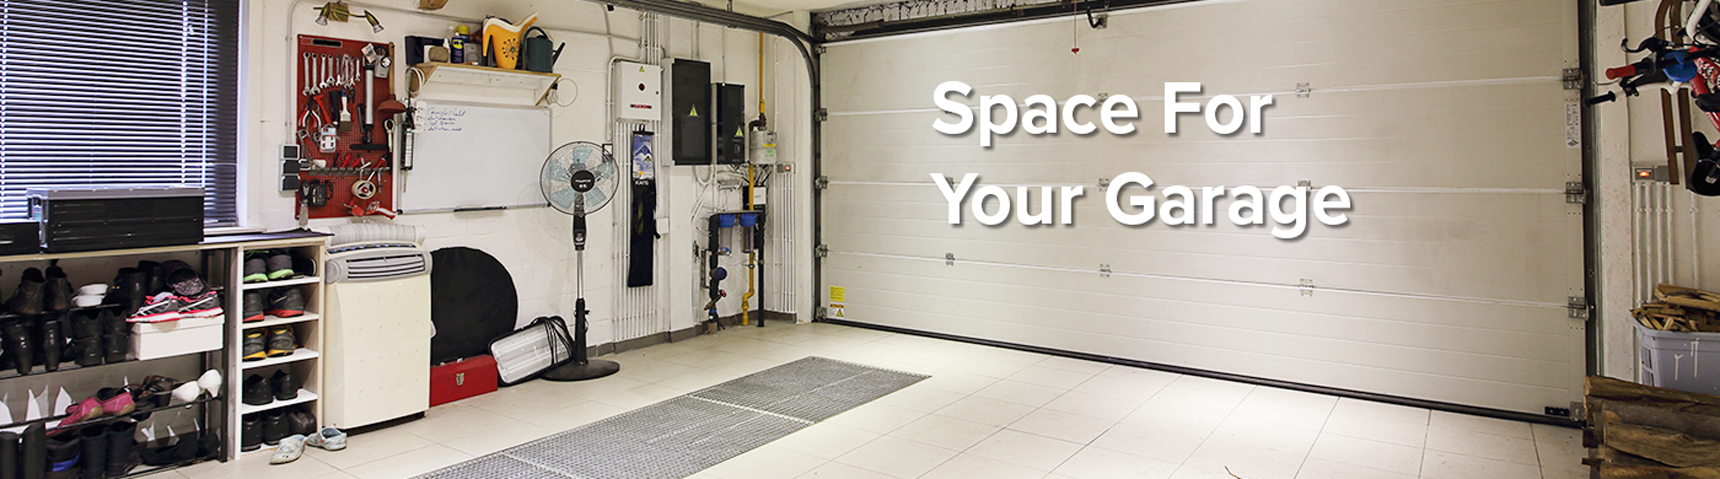 Space For Your Garage